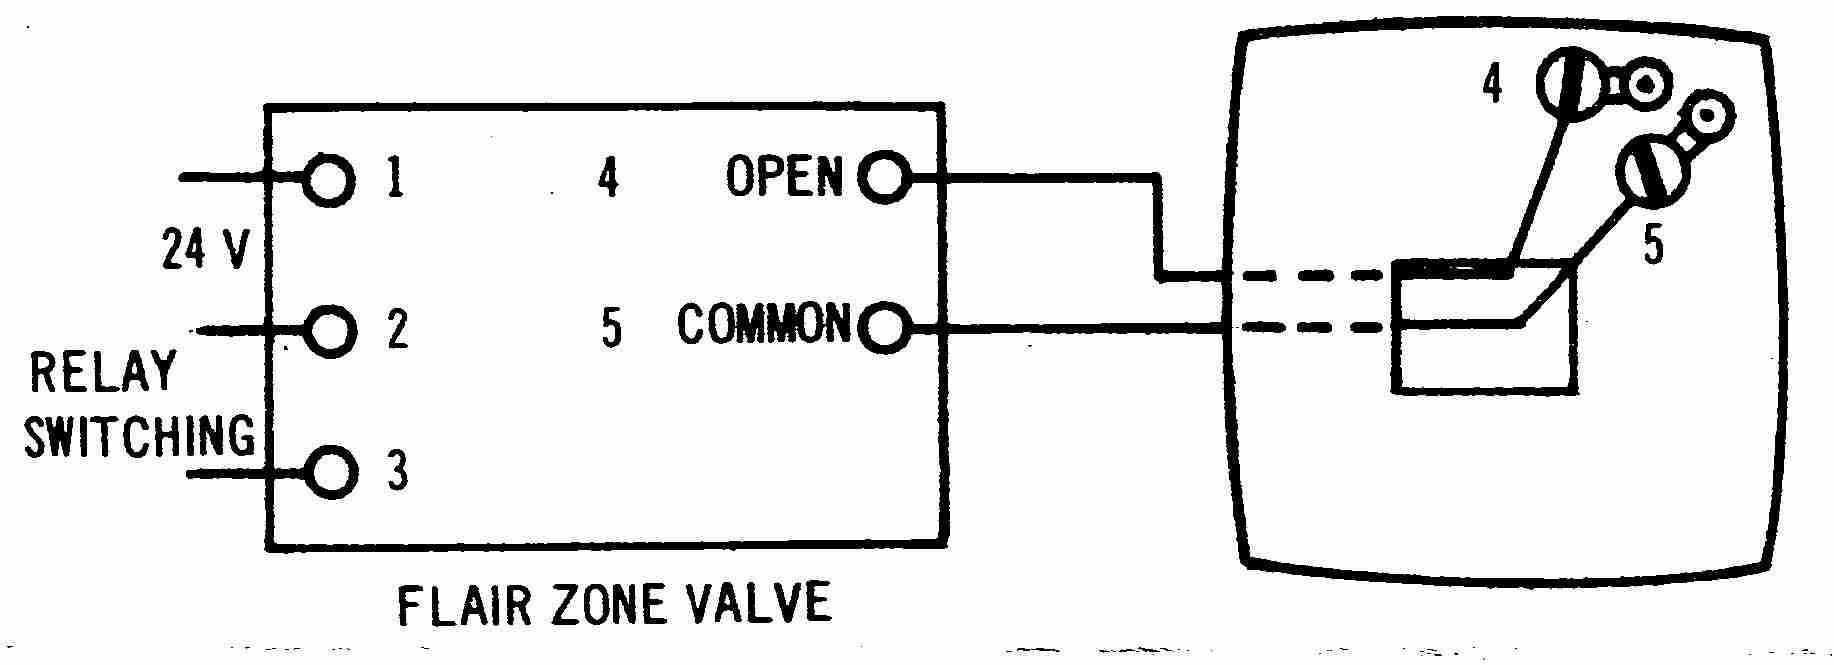 Flair2w_001_DJFc1 room thermostat wiring diagrams for hvac systems fcu wiring diagram at cita.asia